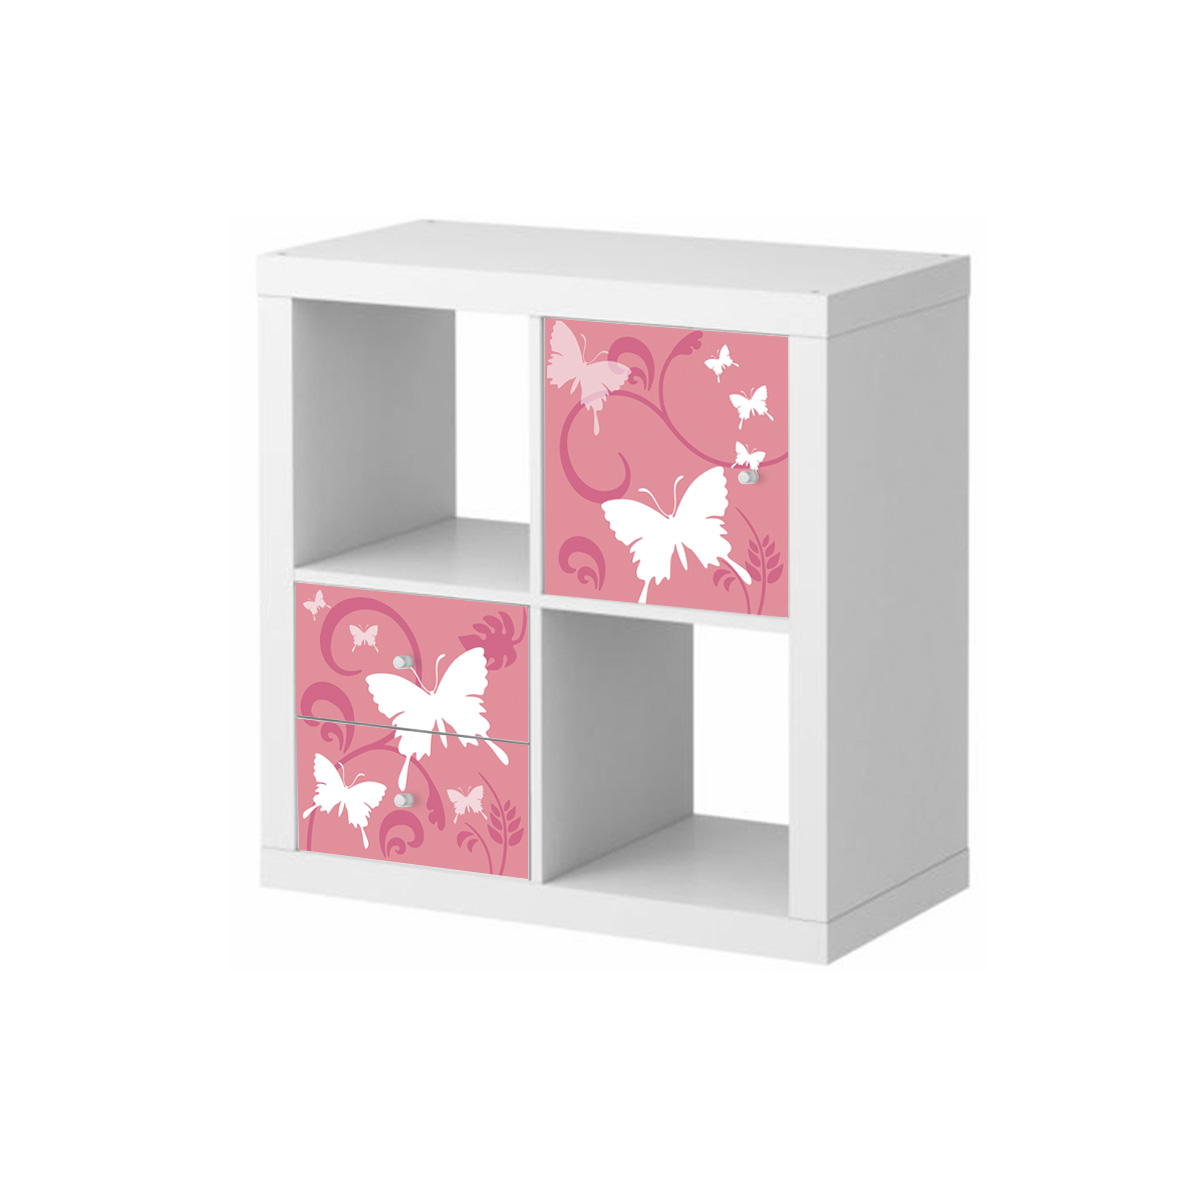 stickers meubles ikea stickers meubles ikea papillon prairie 2 ambiance. Black Bedroom Furniture Sets. Home Design Ideas